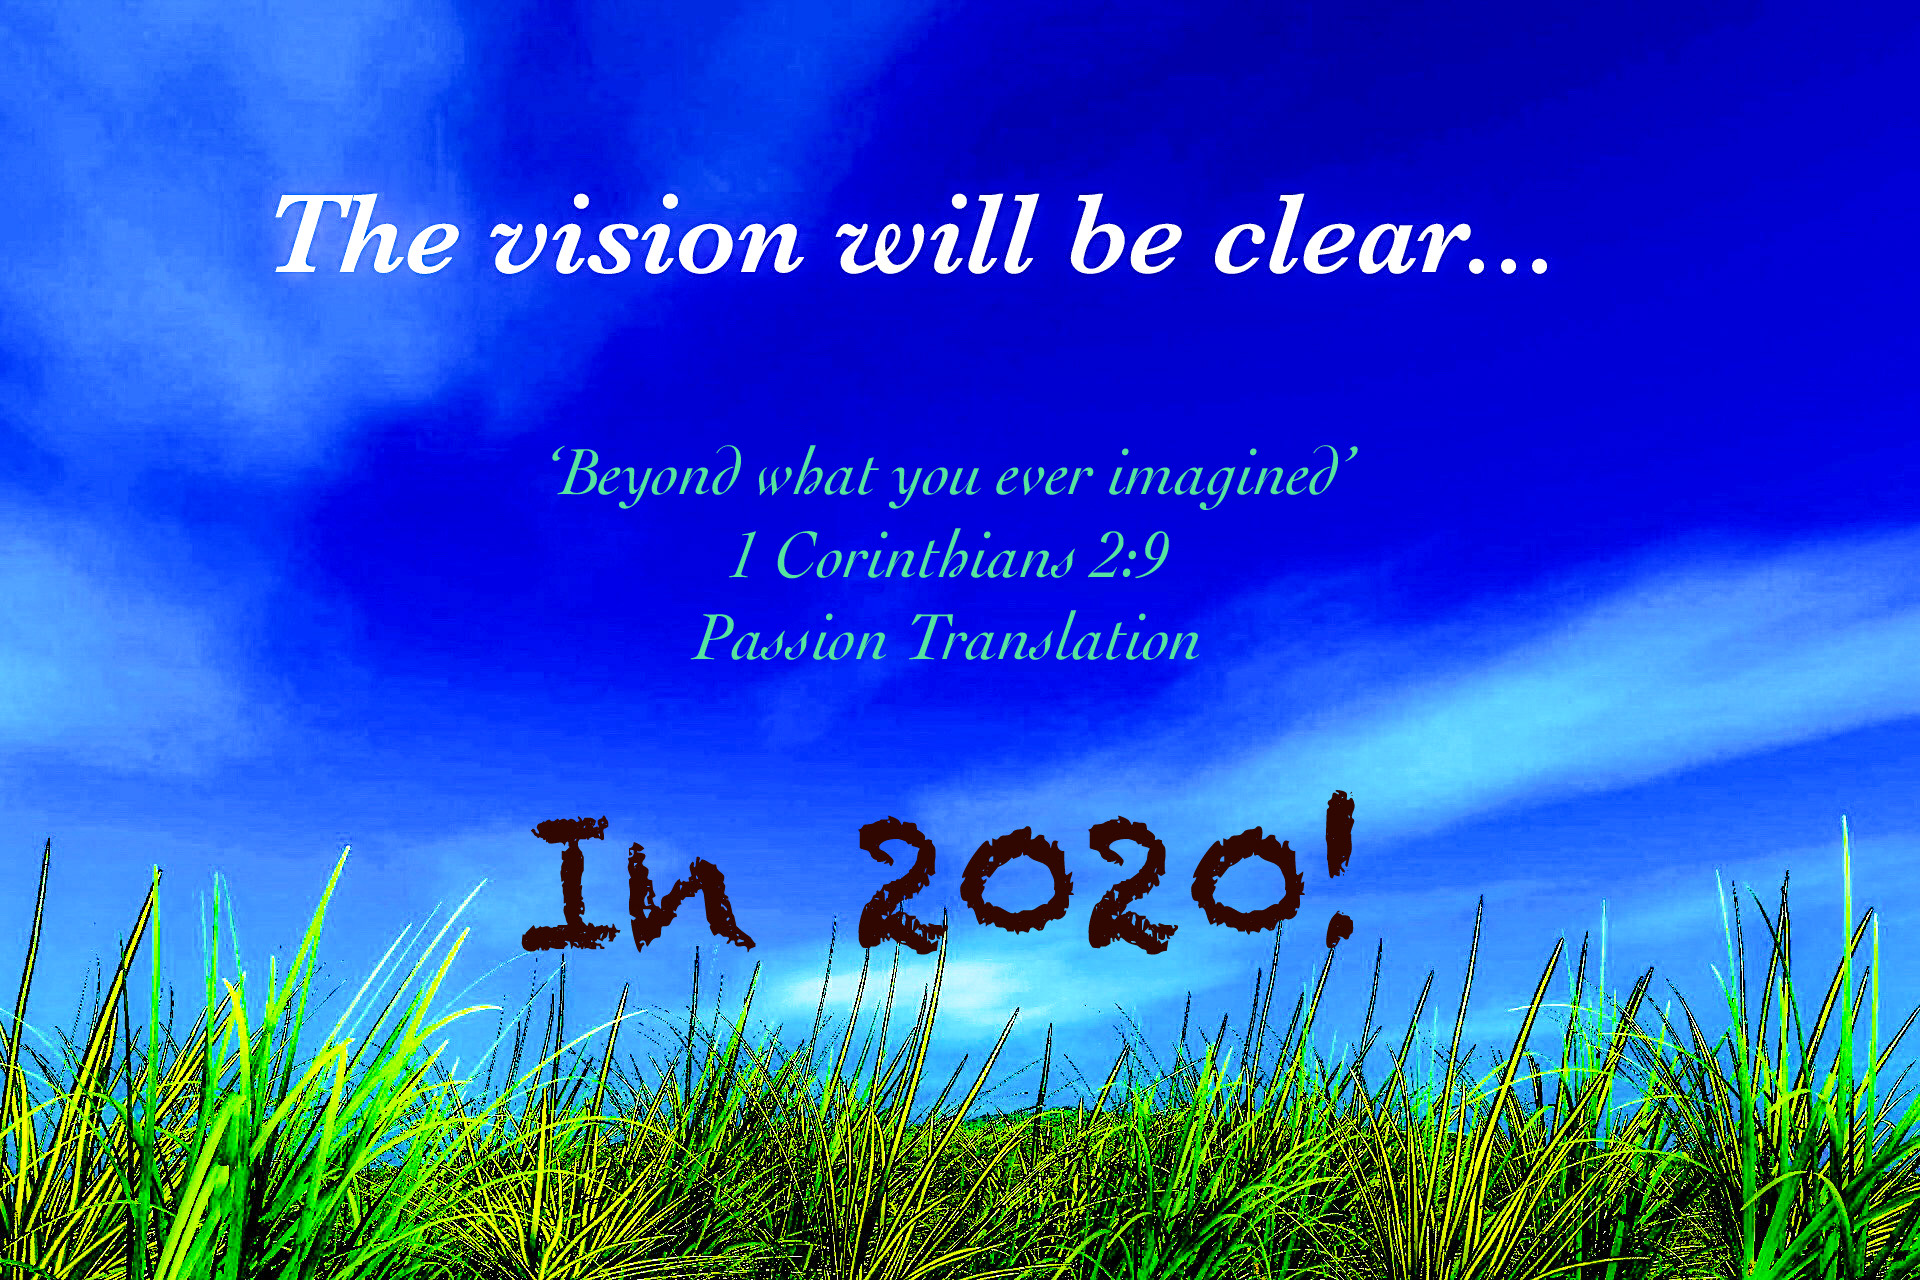 2020 vision is clear.JPEG